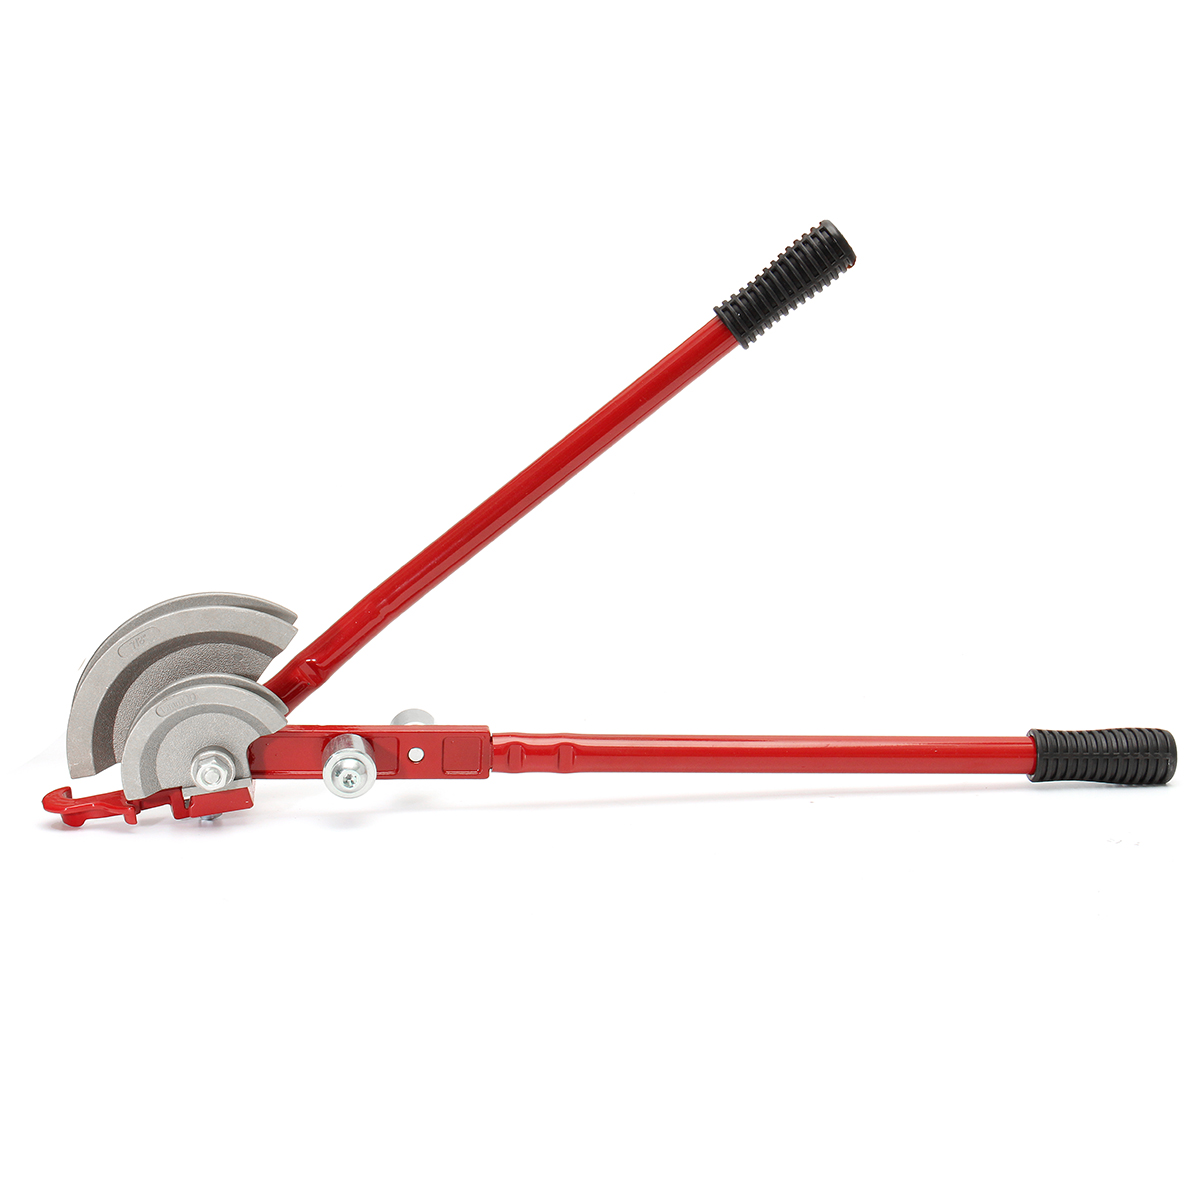 Heavy Duty Pipe Tube Bender Steel Aluminum Alloy With 15 / 22mm Pipe Handheld